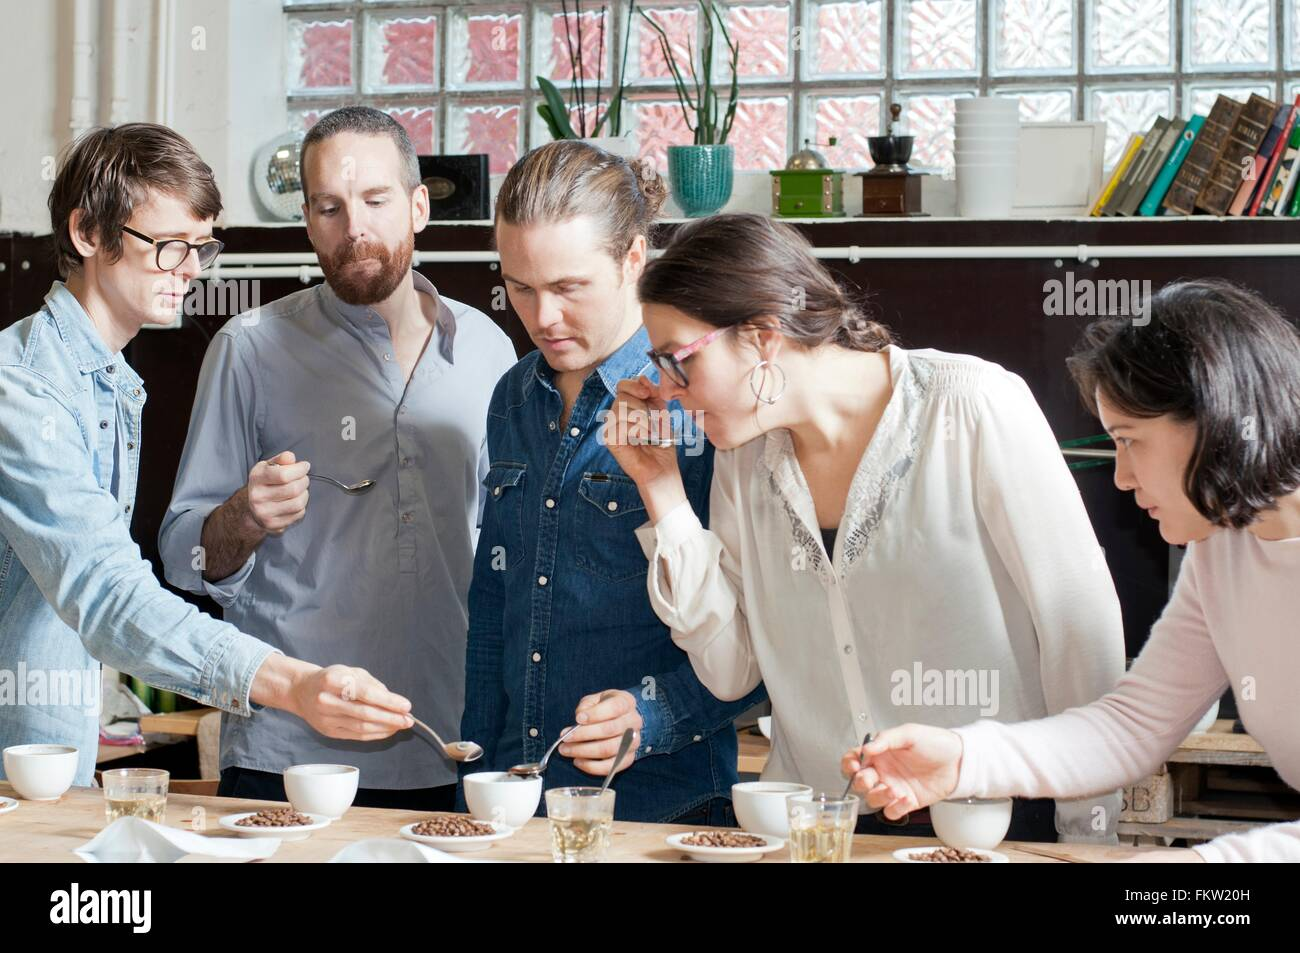 C fee tasters sipping c fee with spoon Stock Photo